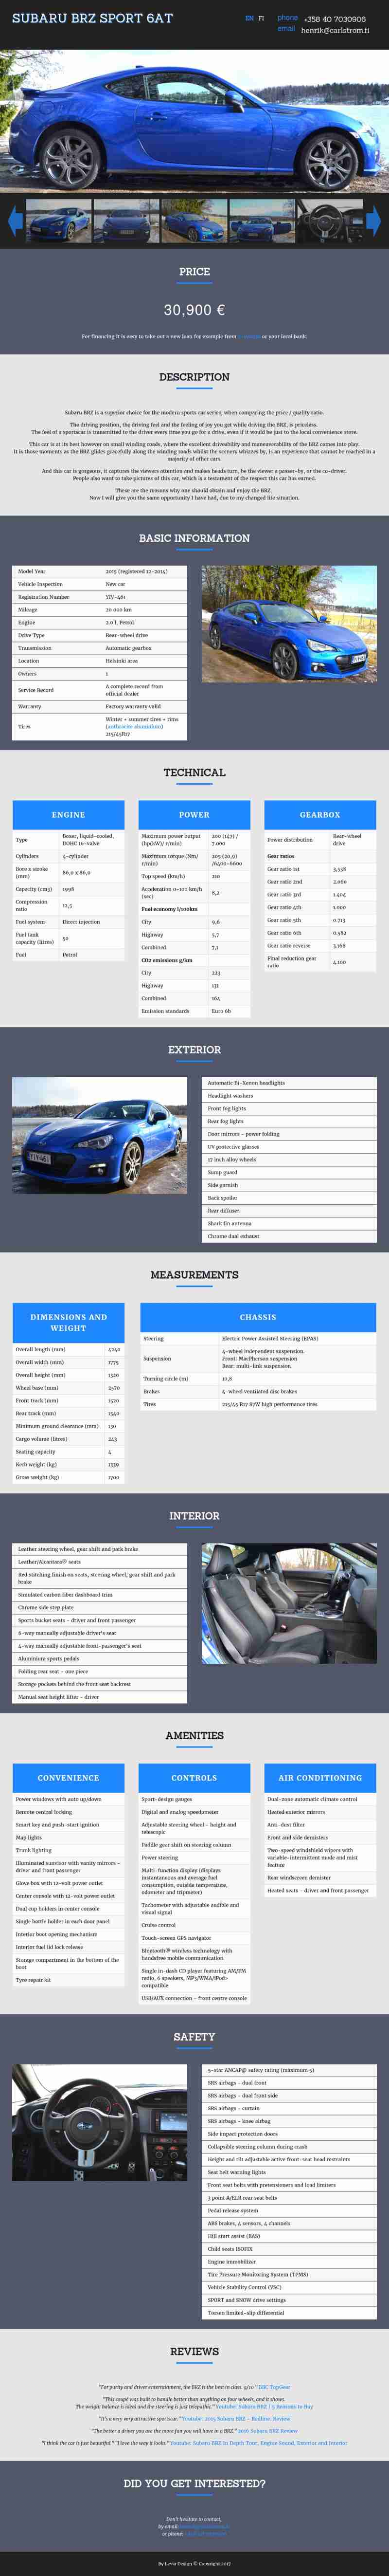 BRZ Sport Car portfolio website's fullscreen view